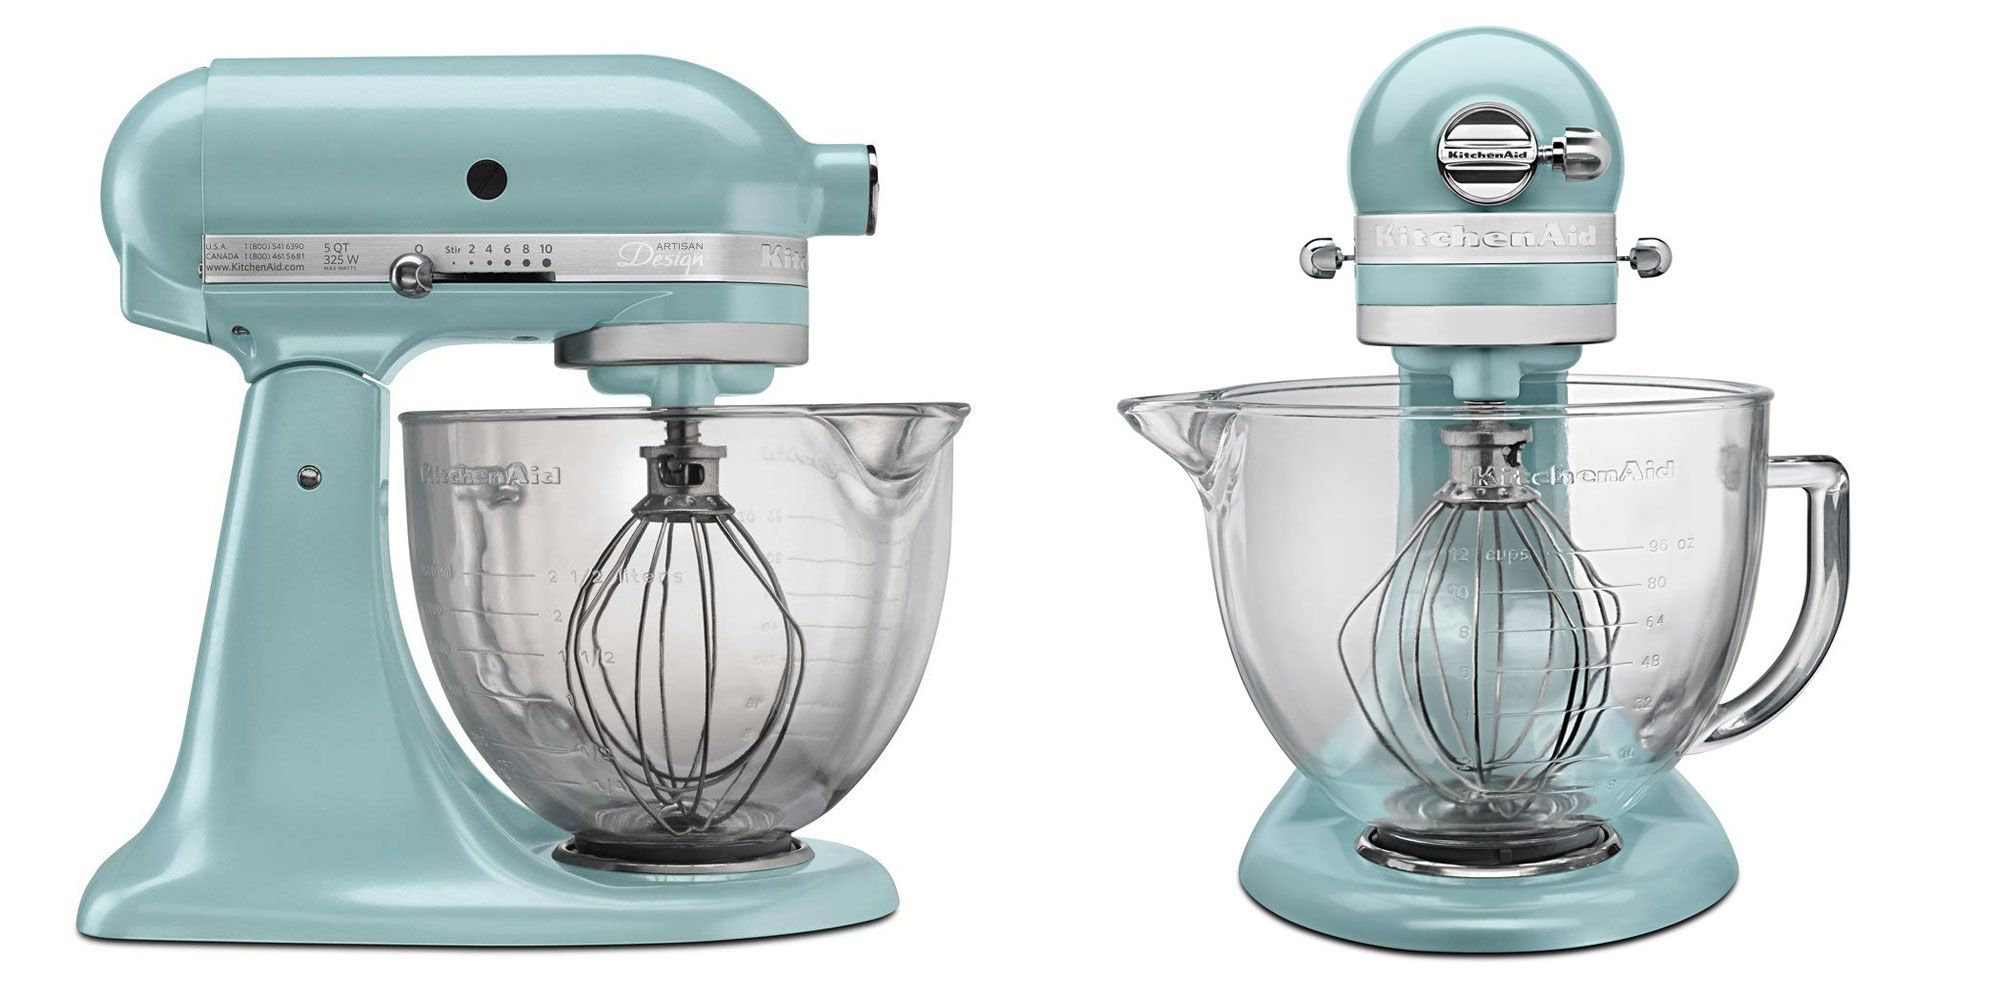 Five Ways To Save $100 On A KitchenAid Mixer